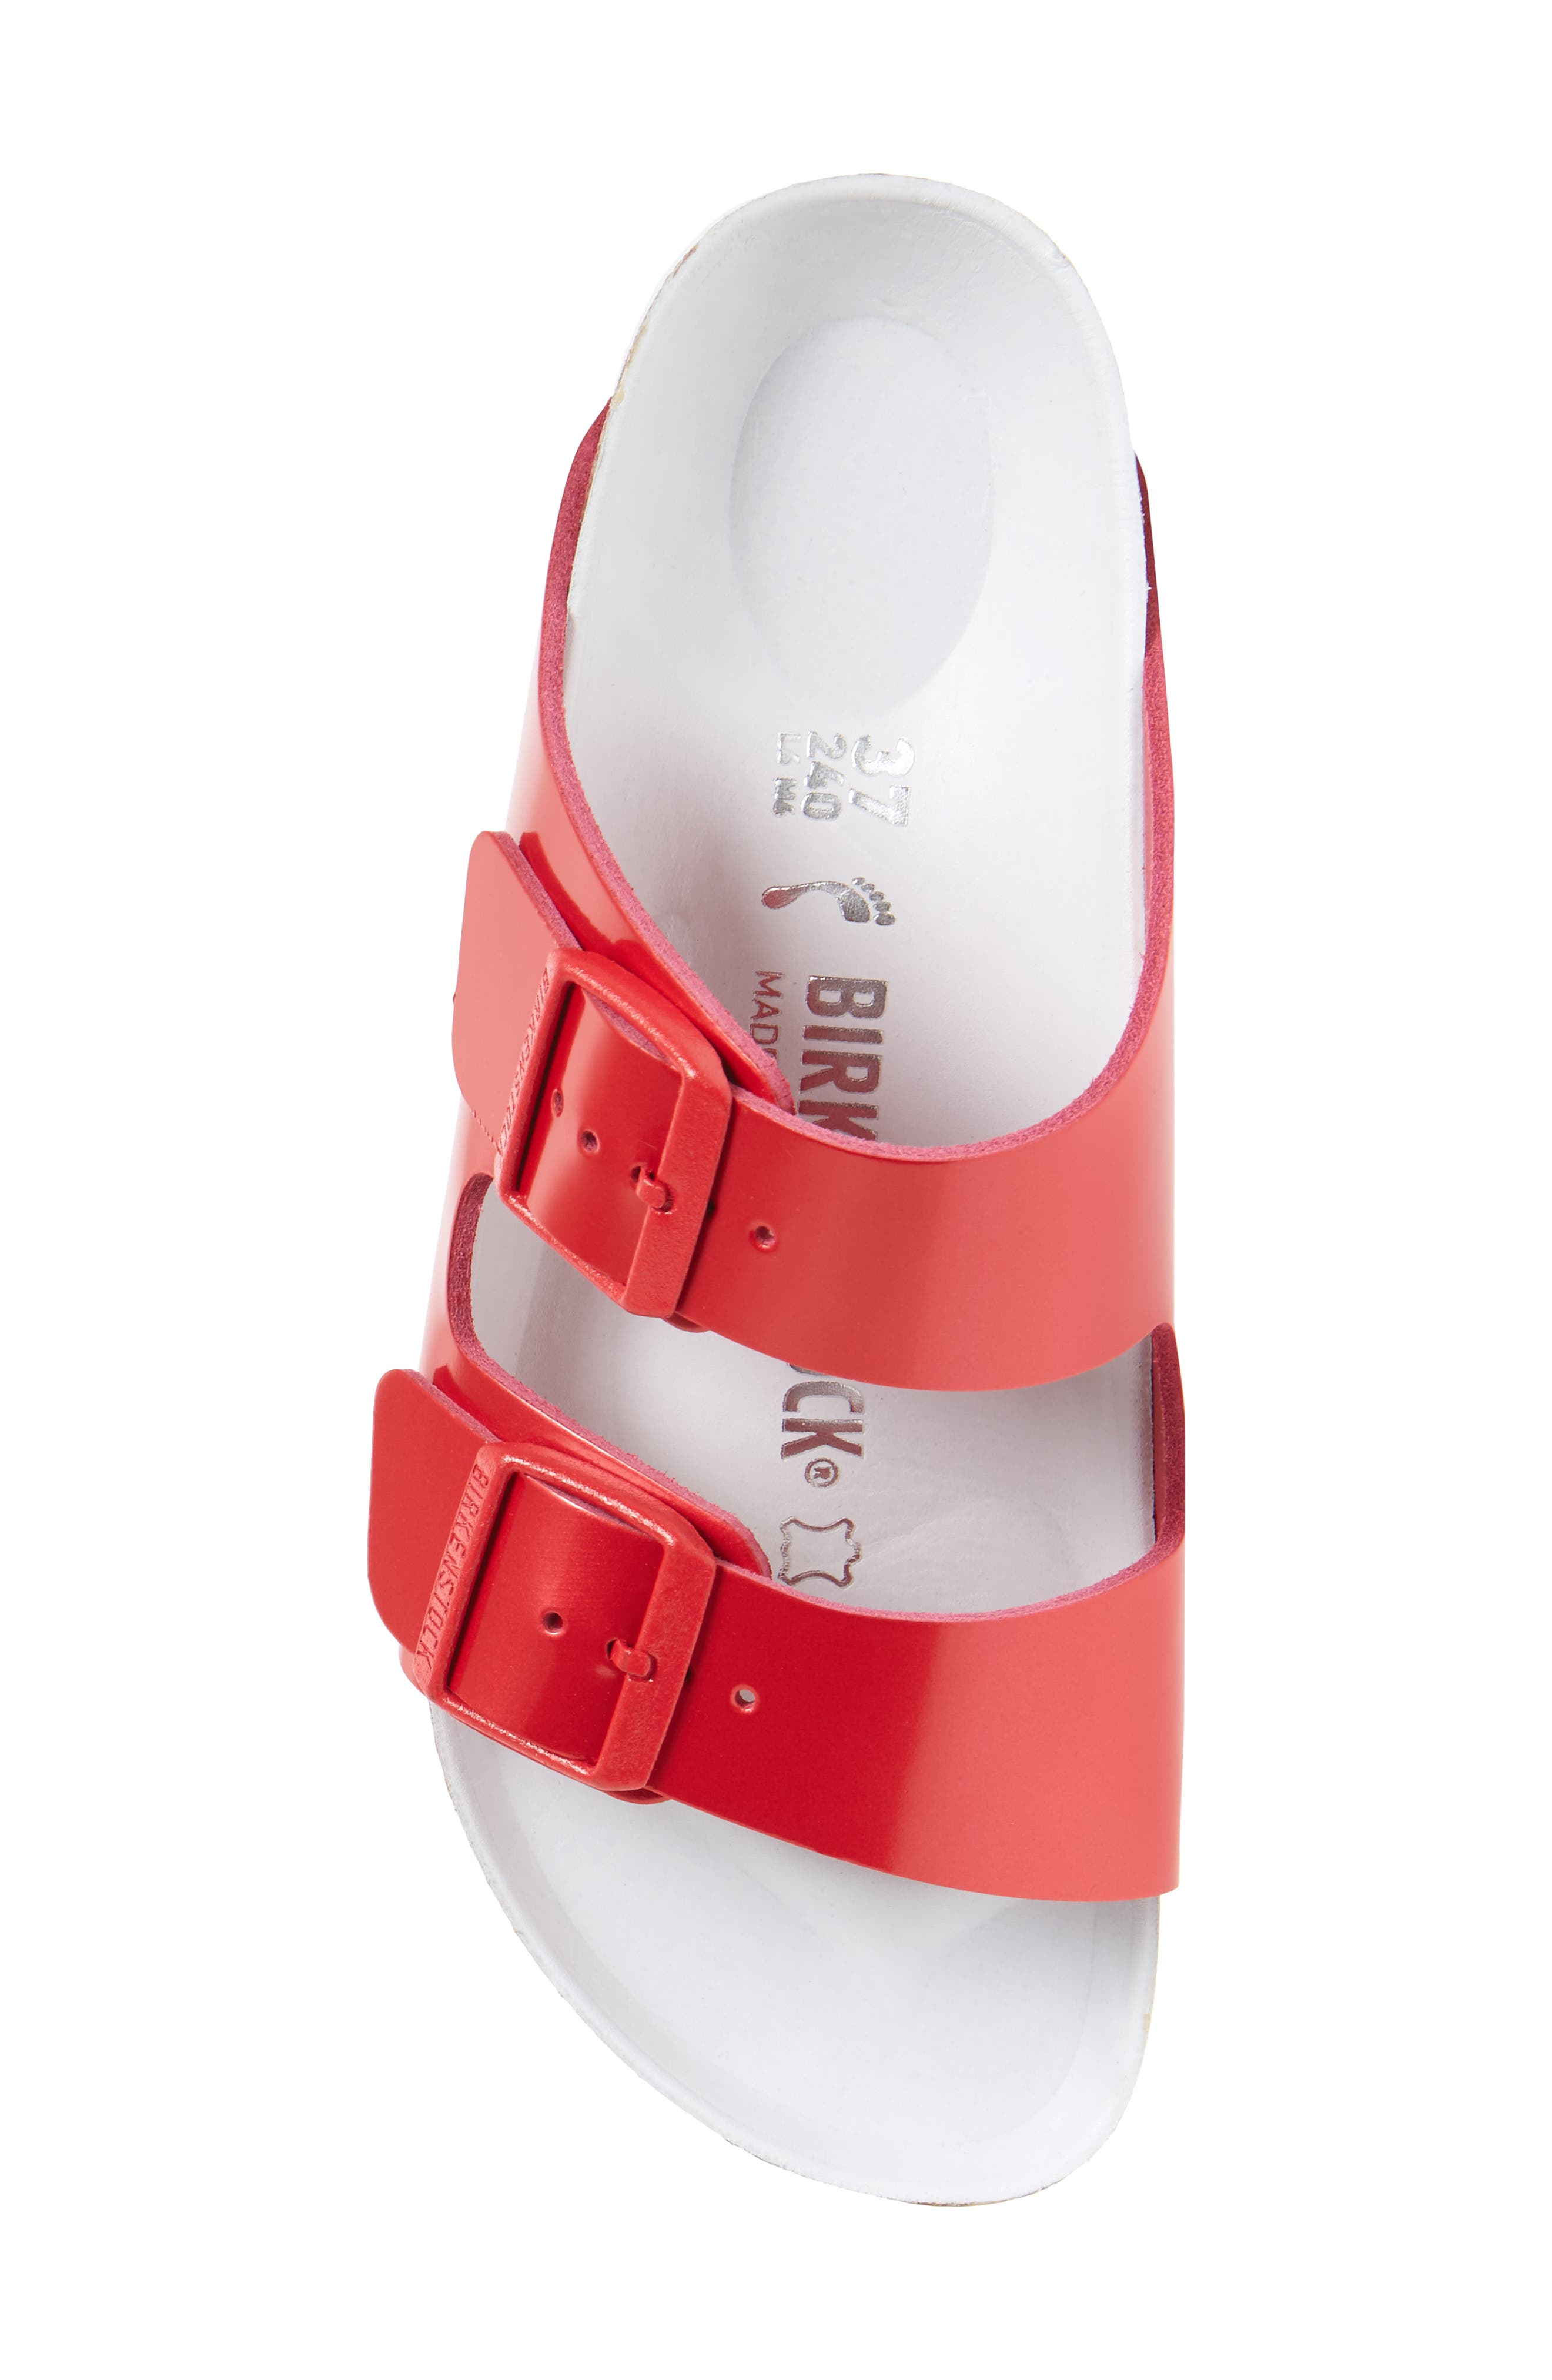 Arizona Hex Limited Edition - Shock Drop Slide Sandal,                             Alternate thumbnail 5, color,                             Red Spectacular Leather